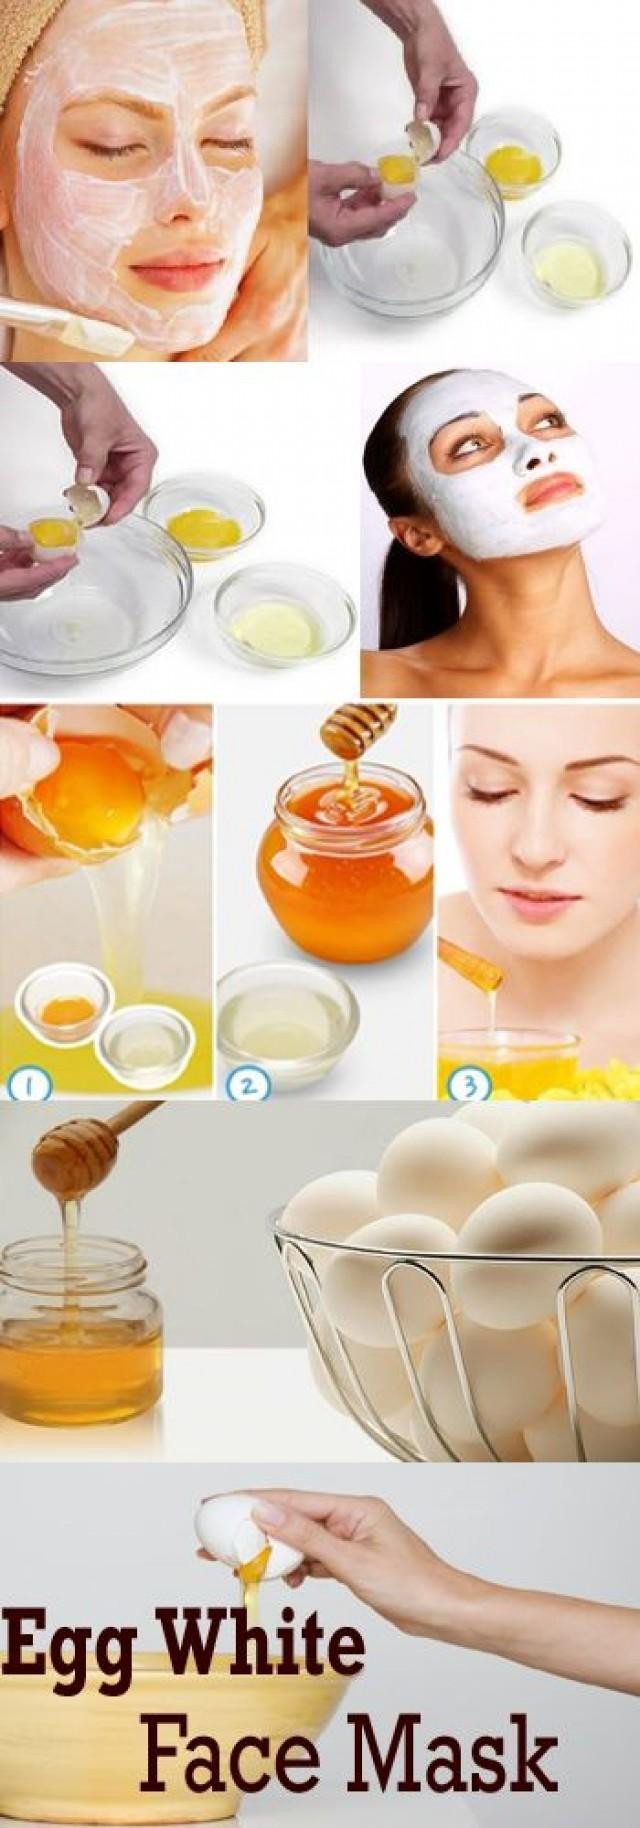 Best ideas about DIY Egg Face Mask . Save or Pin Health And Beauty Egg White Face Mask Weddbook Now.